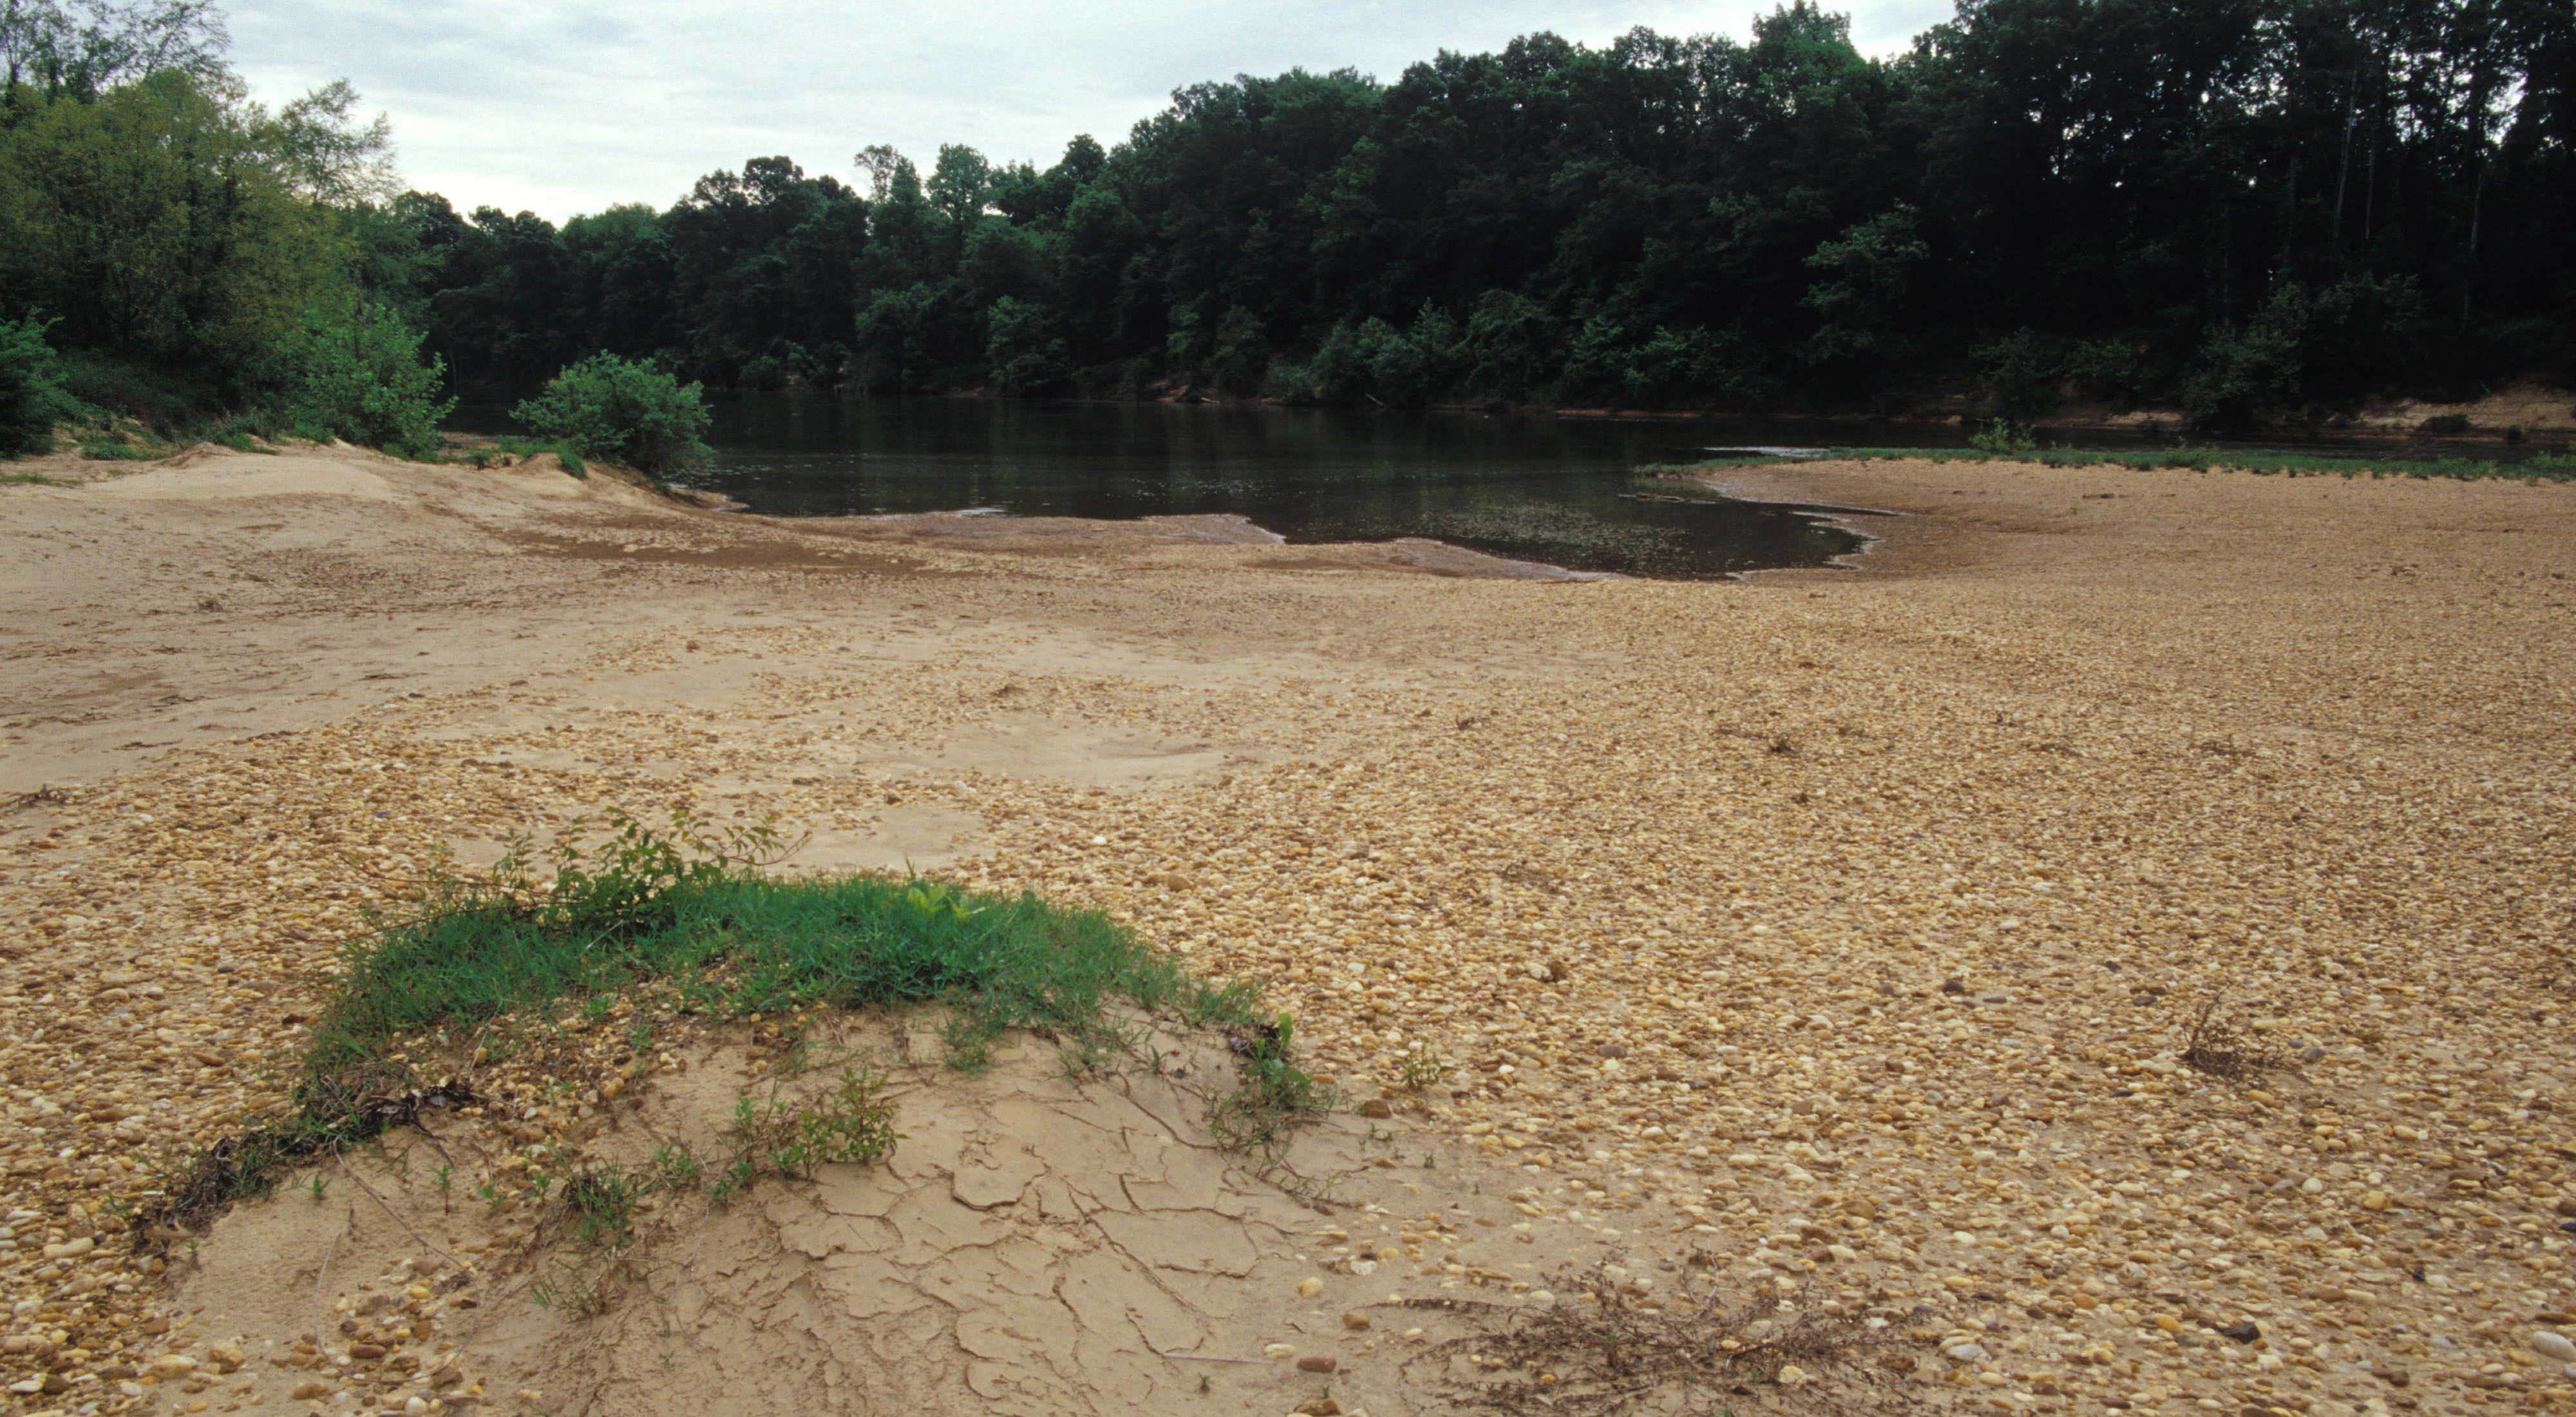 April 2002. Sand and gravel beach, with Cahaba River in mid-distance at Barton's Beach Preserve in Alabama.